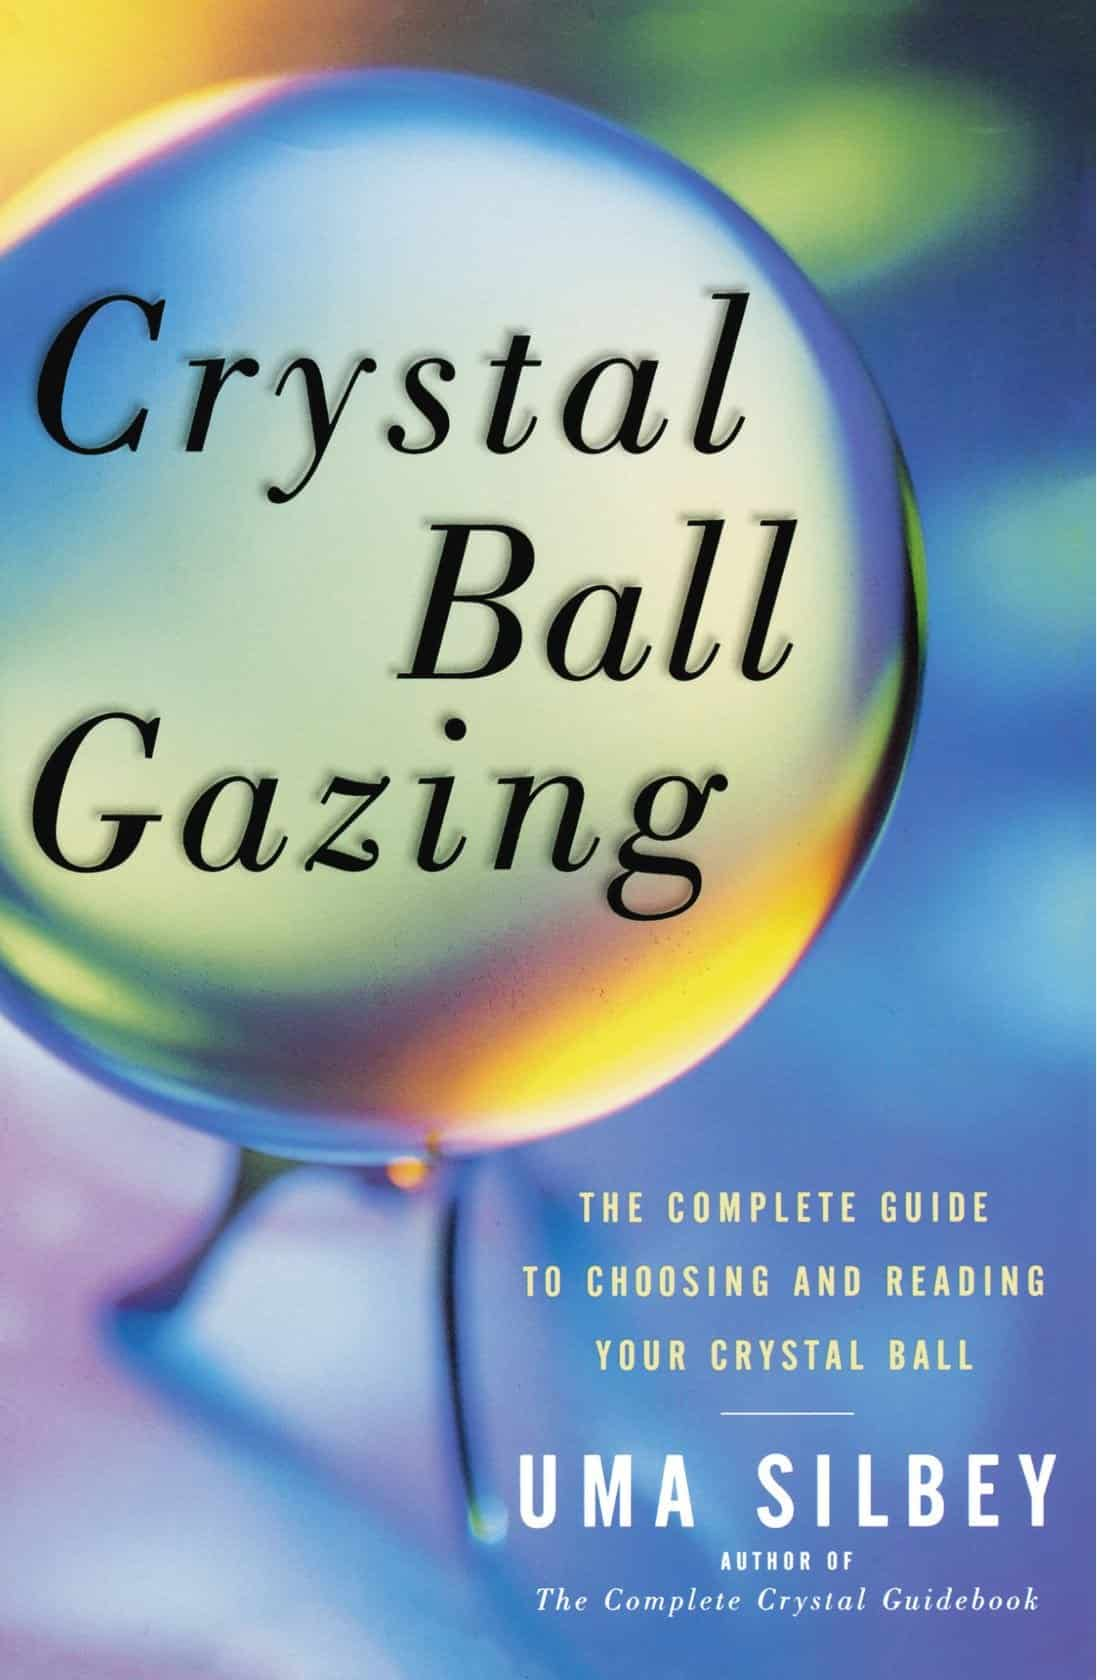 Crystal Ball Gazing